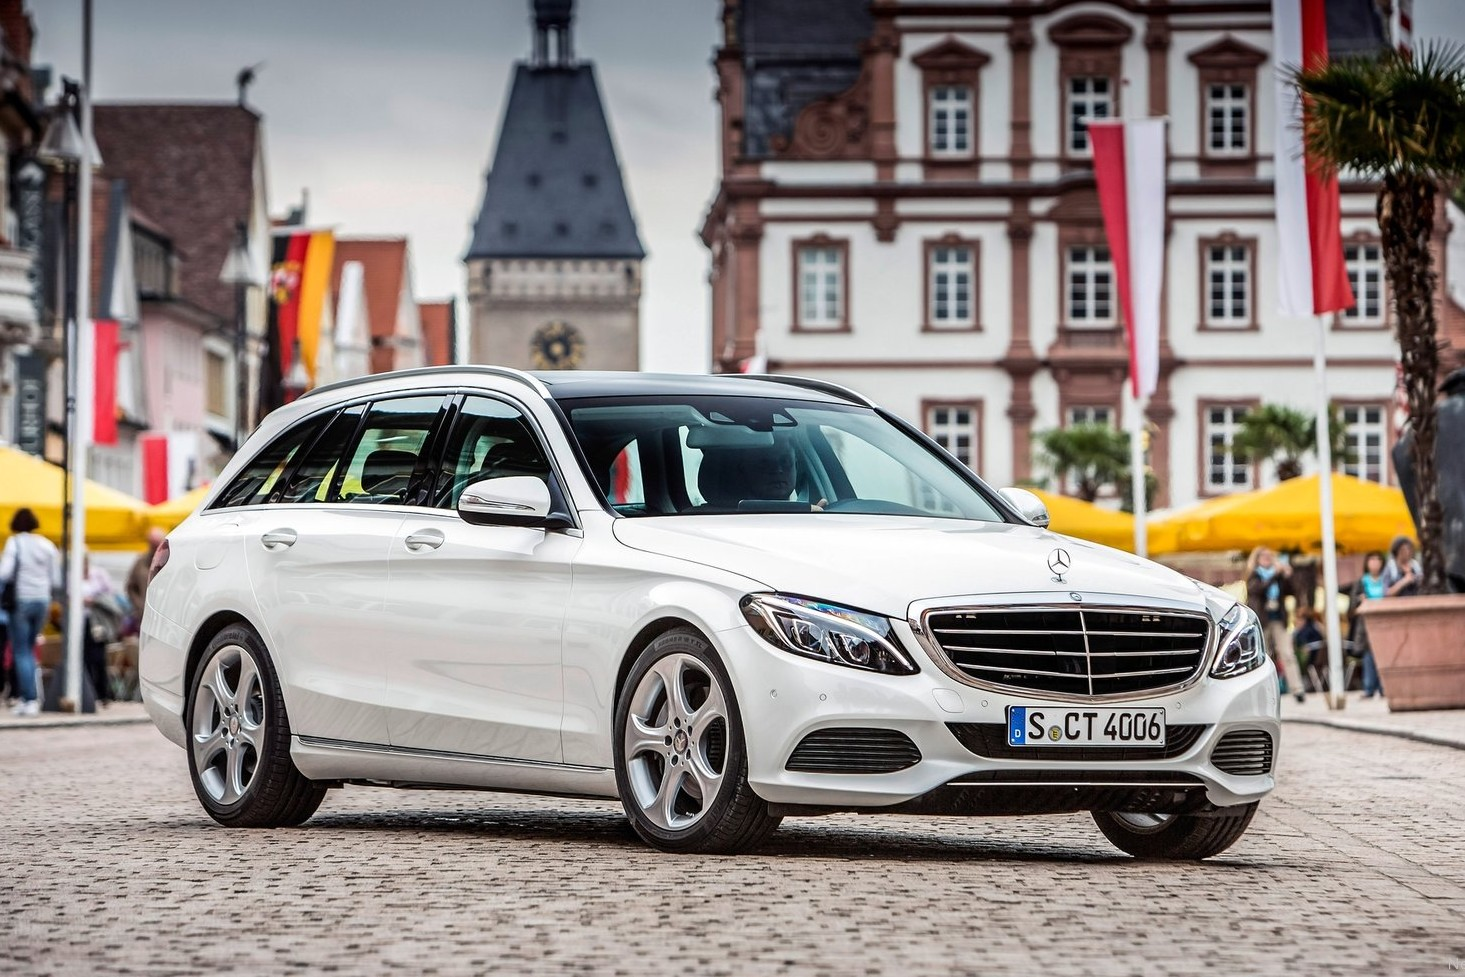 Mercedes-Benz said Happy New Year with one of this year's 2016 reveals, of its C 300 d 4MATIC station wagon ('d' is for diesel, 4MATIC is Benz' all-wheel drive system), a car introduced last year in Europe, but which is now exclusive to the brand's Canadian lineup in North America.